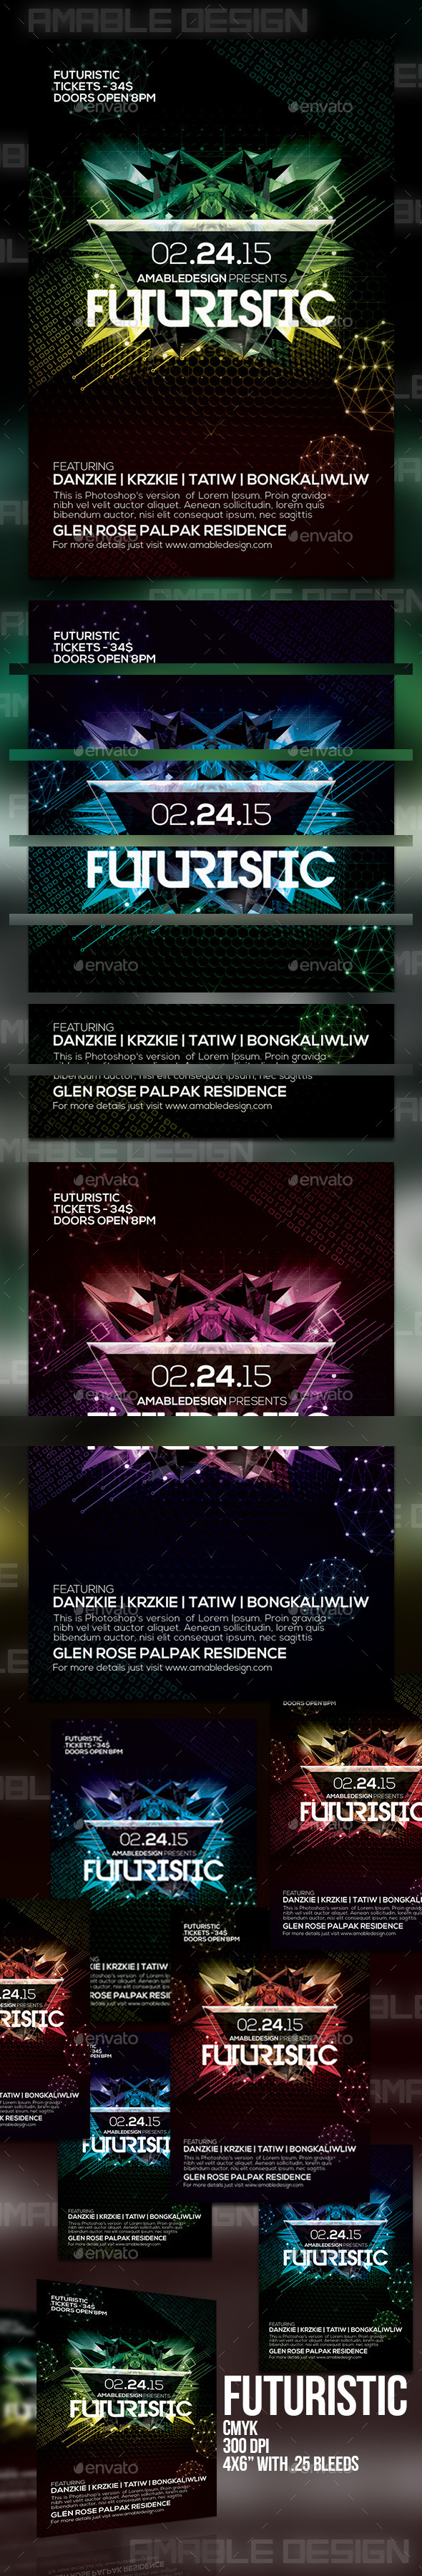 GraphicRiver Futuristic Flyer 10436336